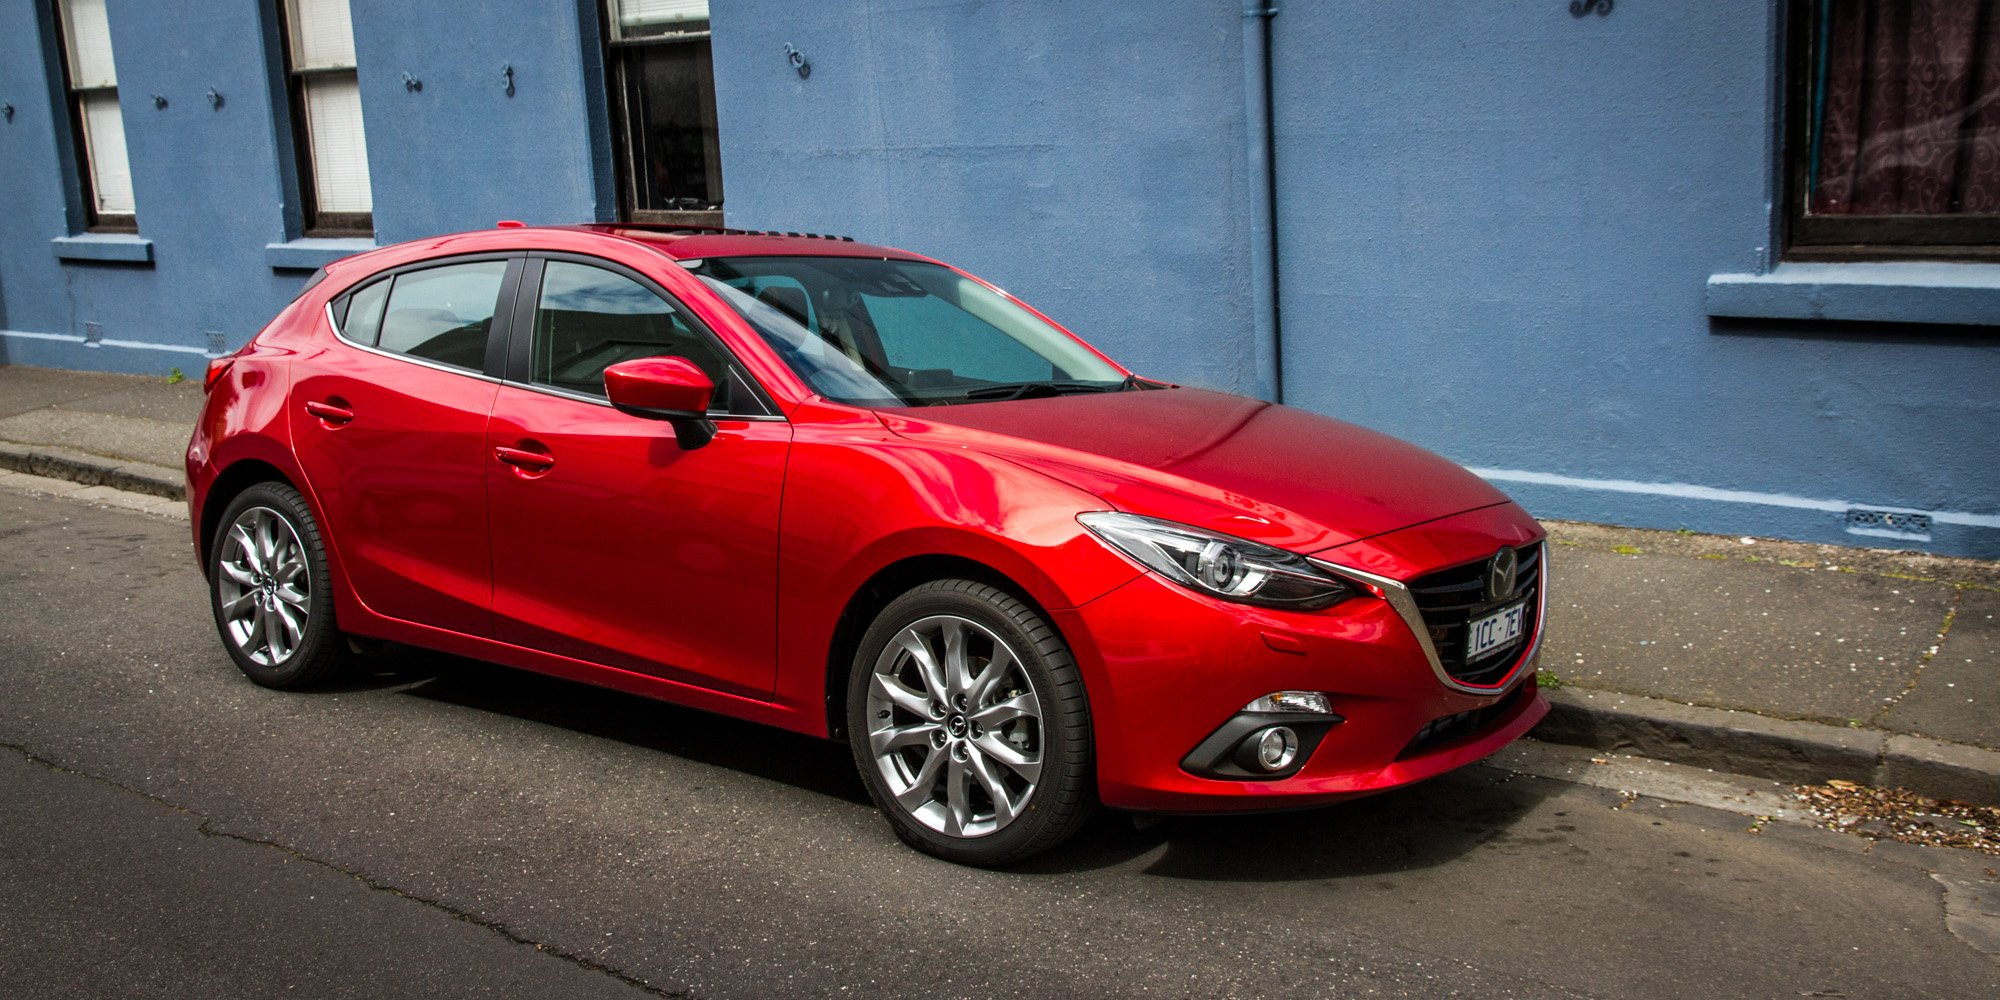 2015 mazda 3 sp25 astina review photos caradvice. Black Bedroom Furniture Sets. Home Design Ideas